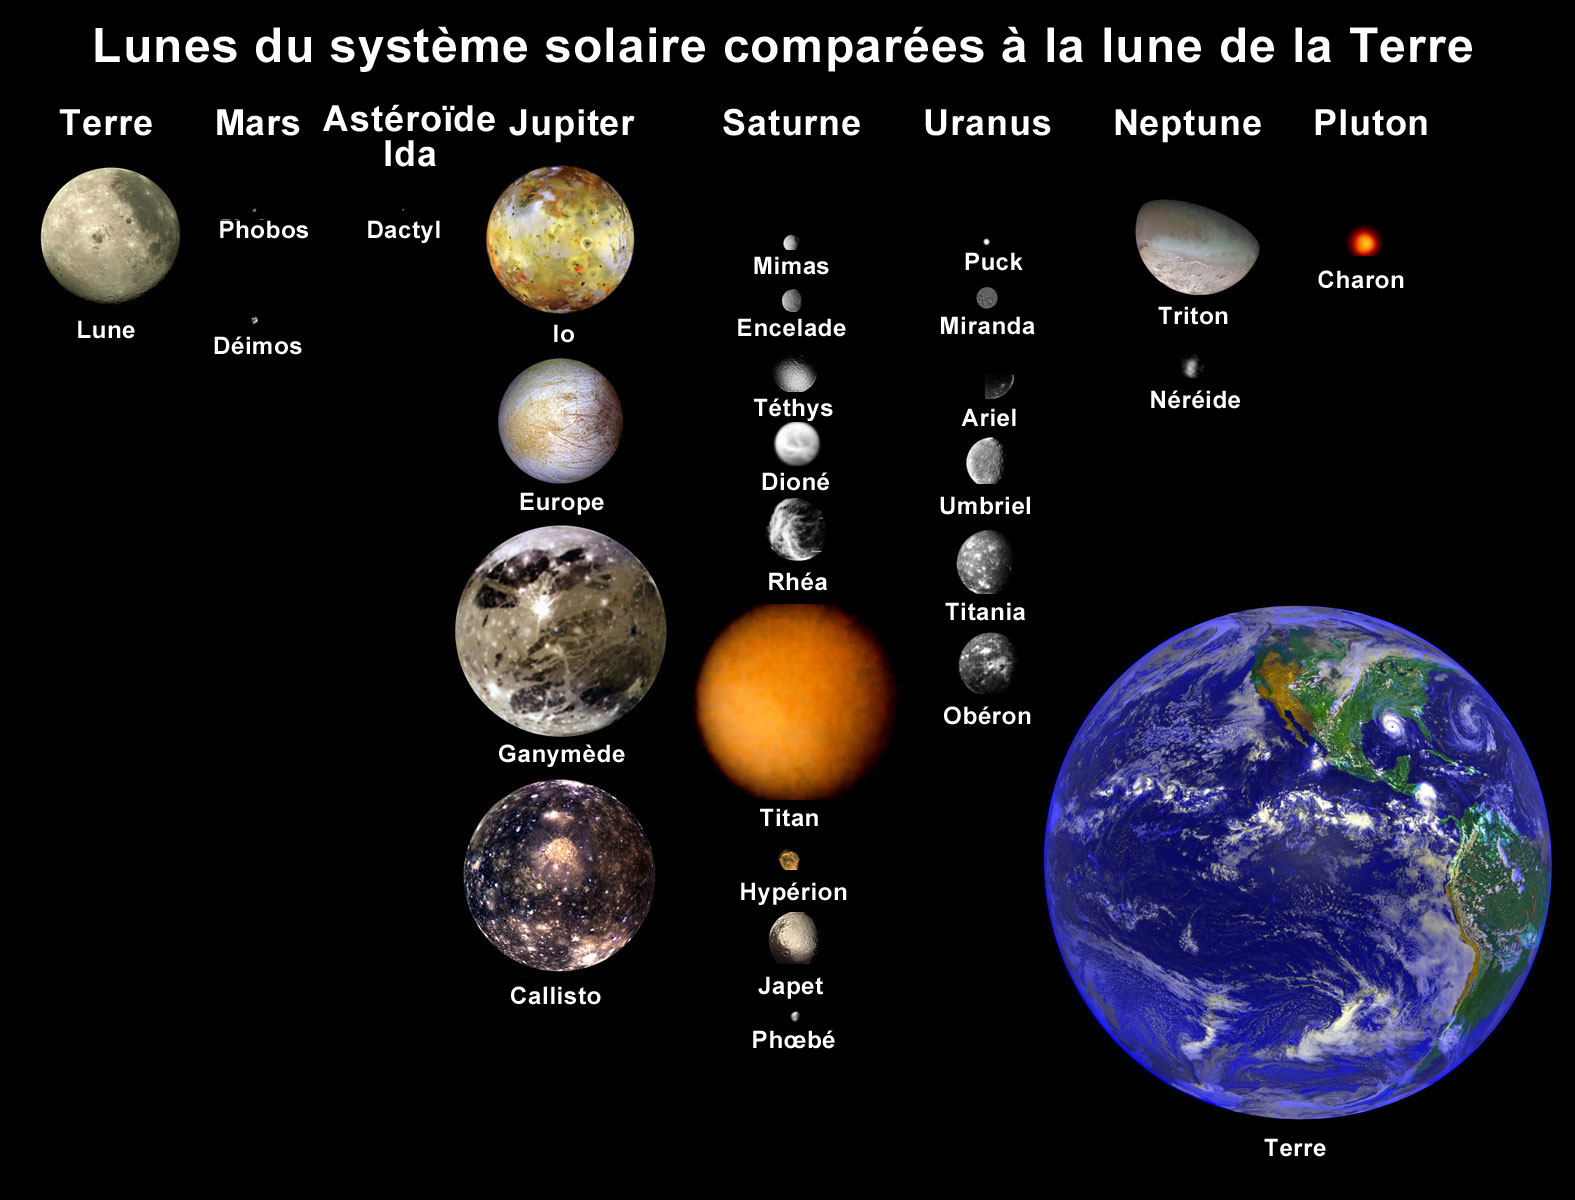 File:Moons of solar system (french).jpg - Wikimedia Commons